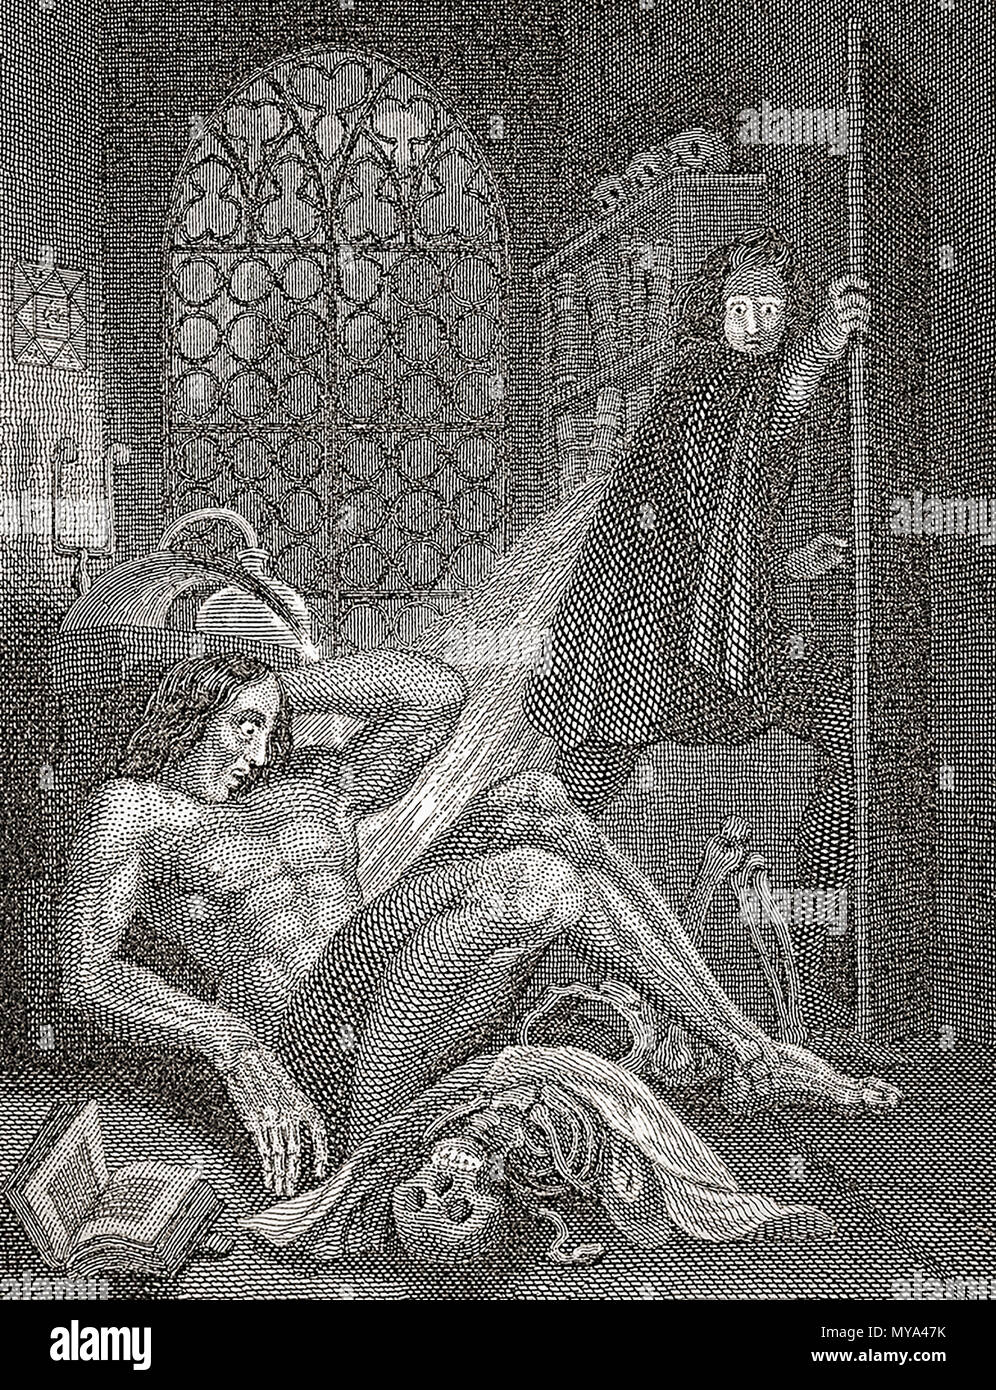 Victor Frankenstein And His Creature Frontispiece By Theodor Von Holst To The 1831 Edition Of